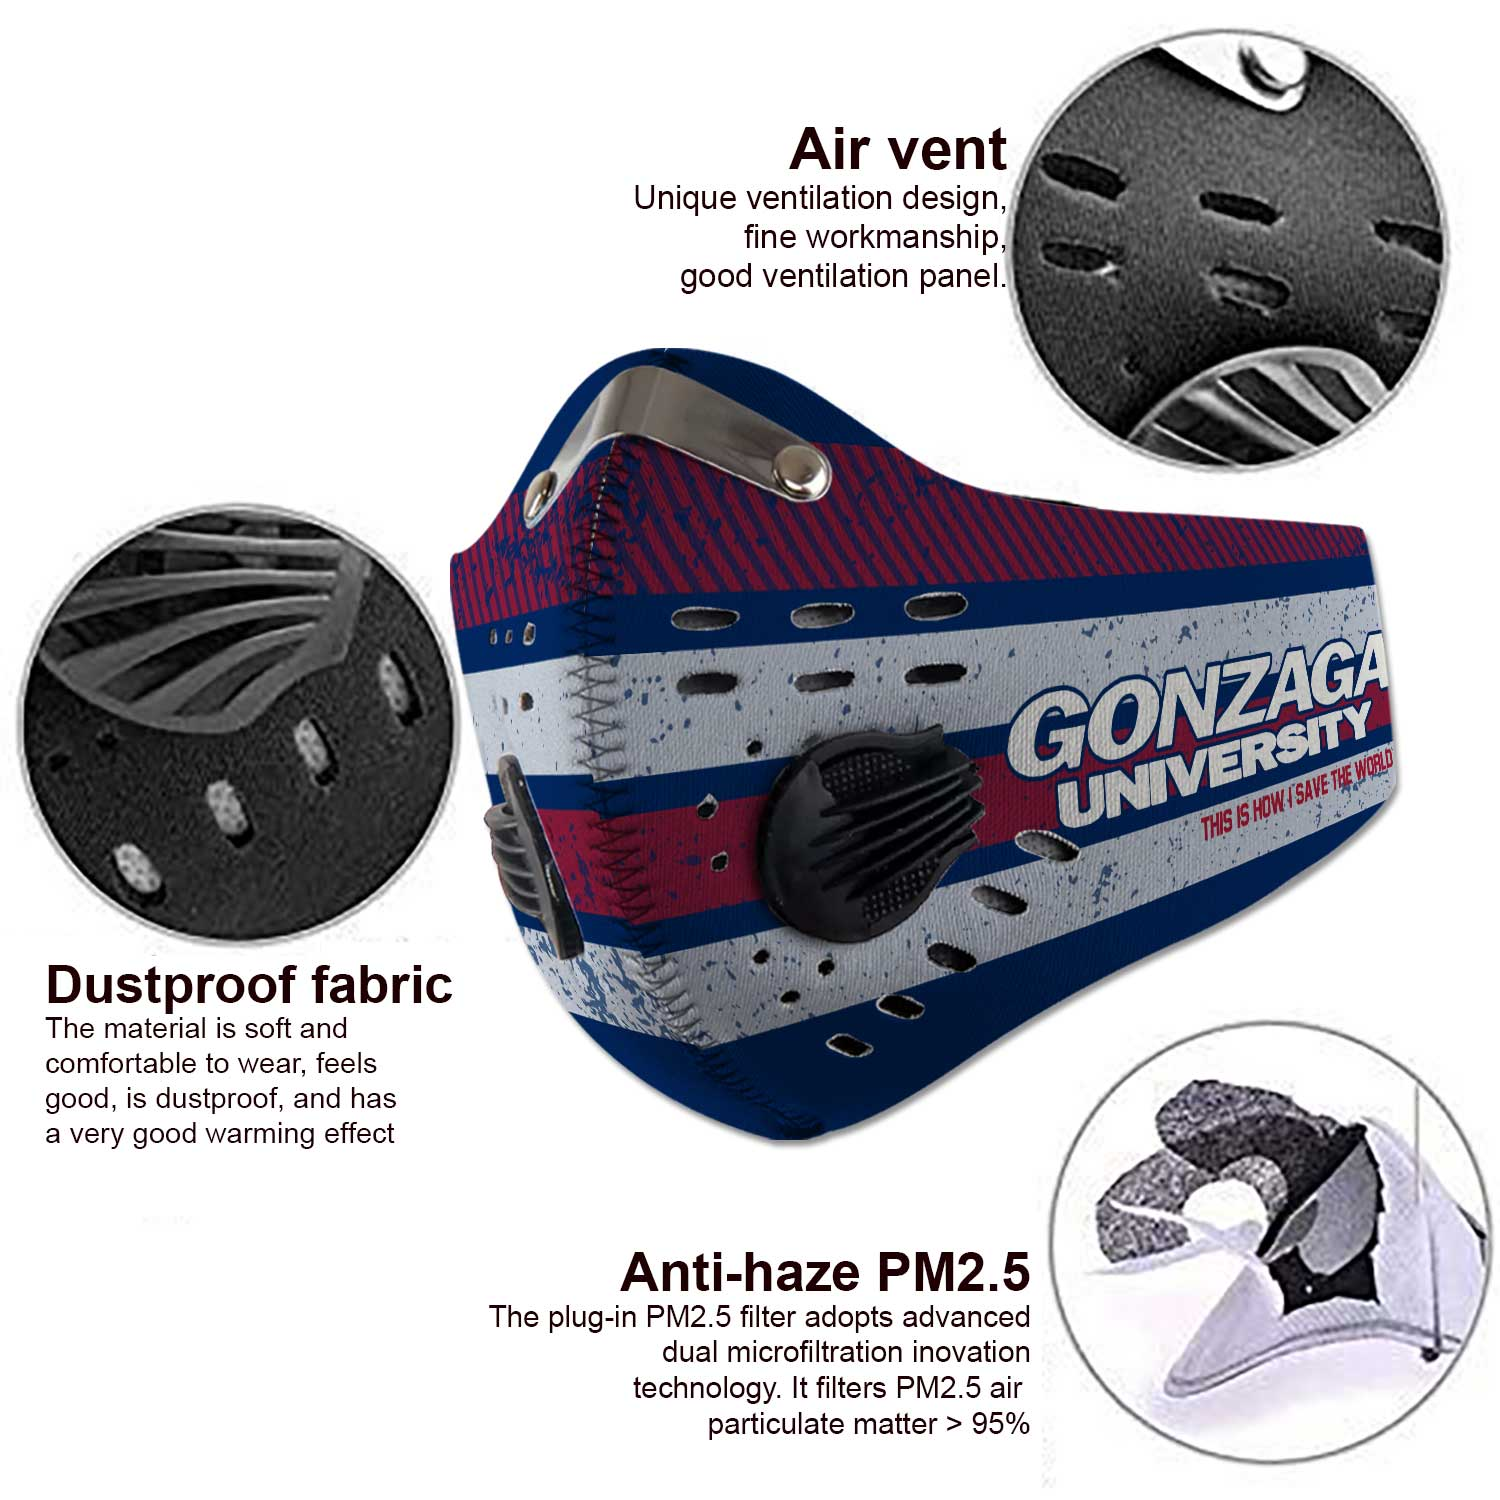 Gonzaga bulldogs men's basketball this is how i save the world face mask 4